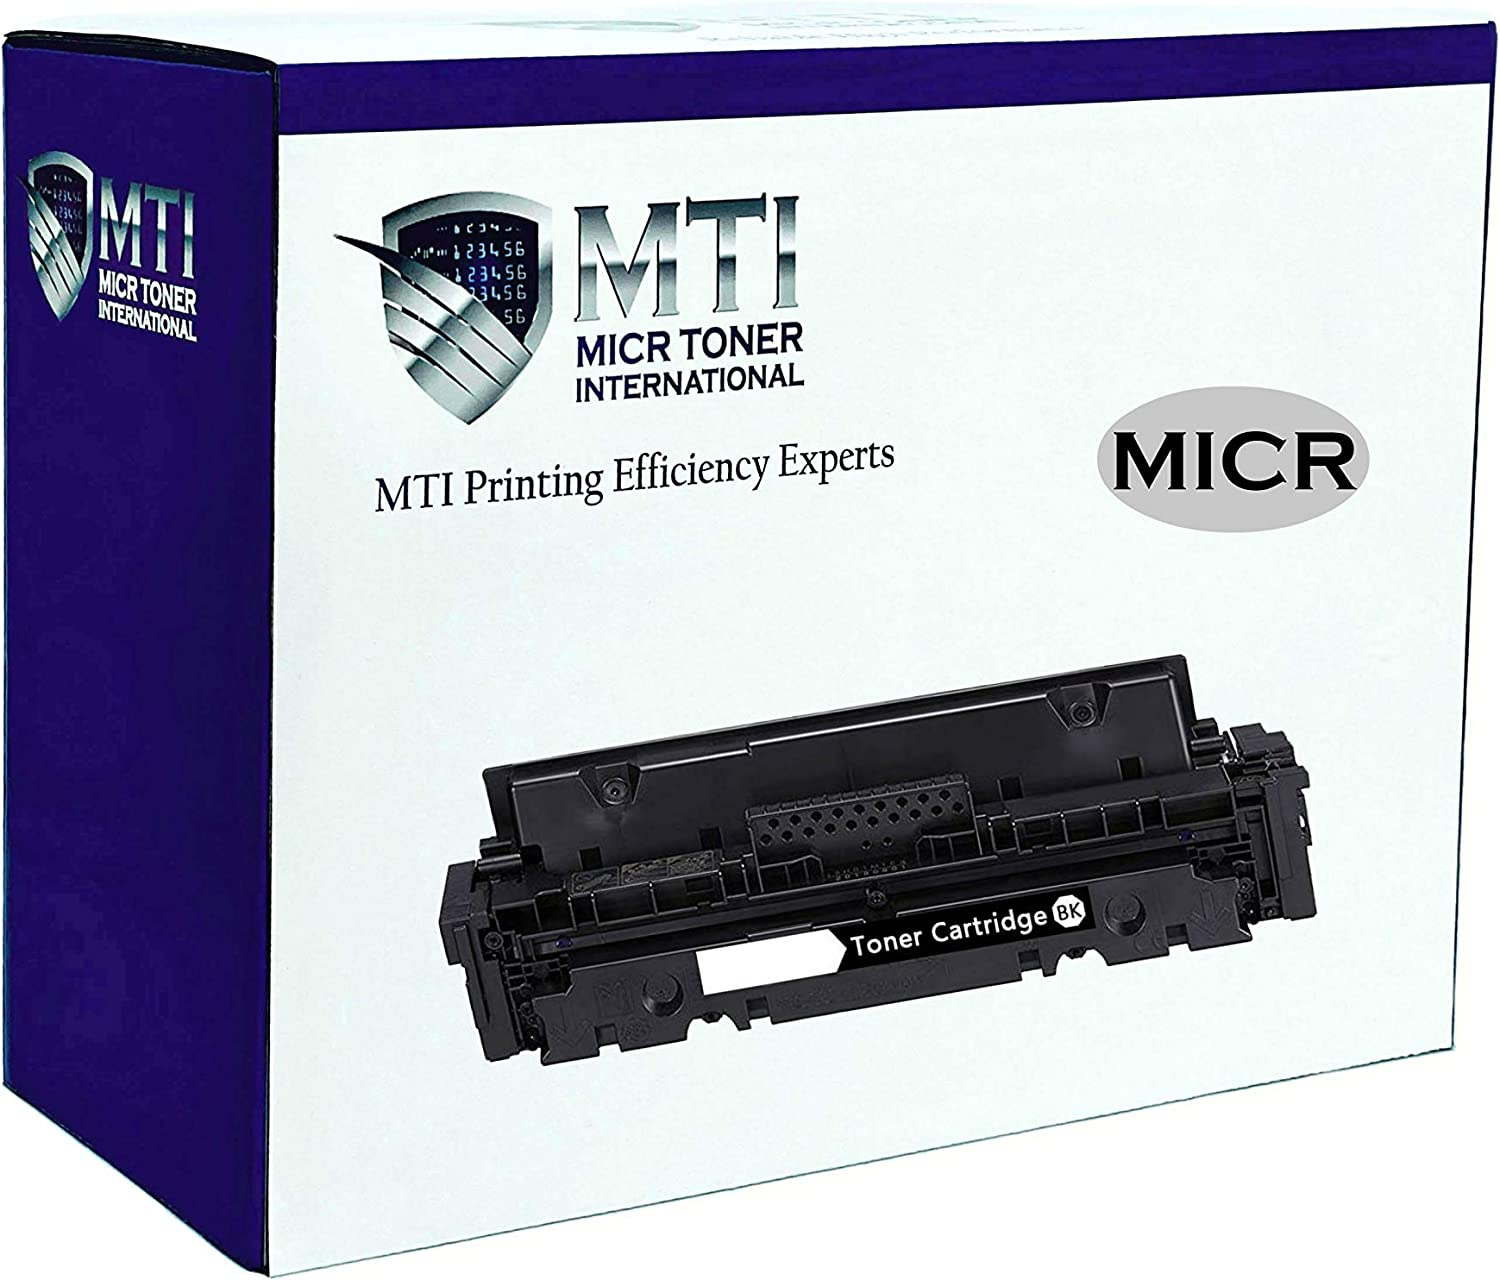 MICR Toner International OEM Modified Magnetic Ink Cartridge Replacement for HP W2020A 414A Laserjet M454 M479